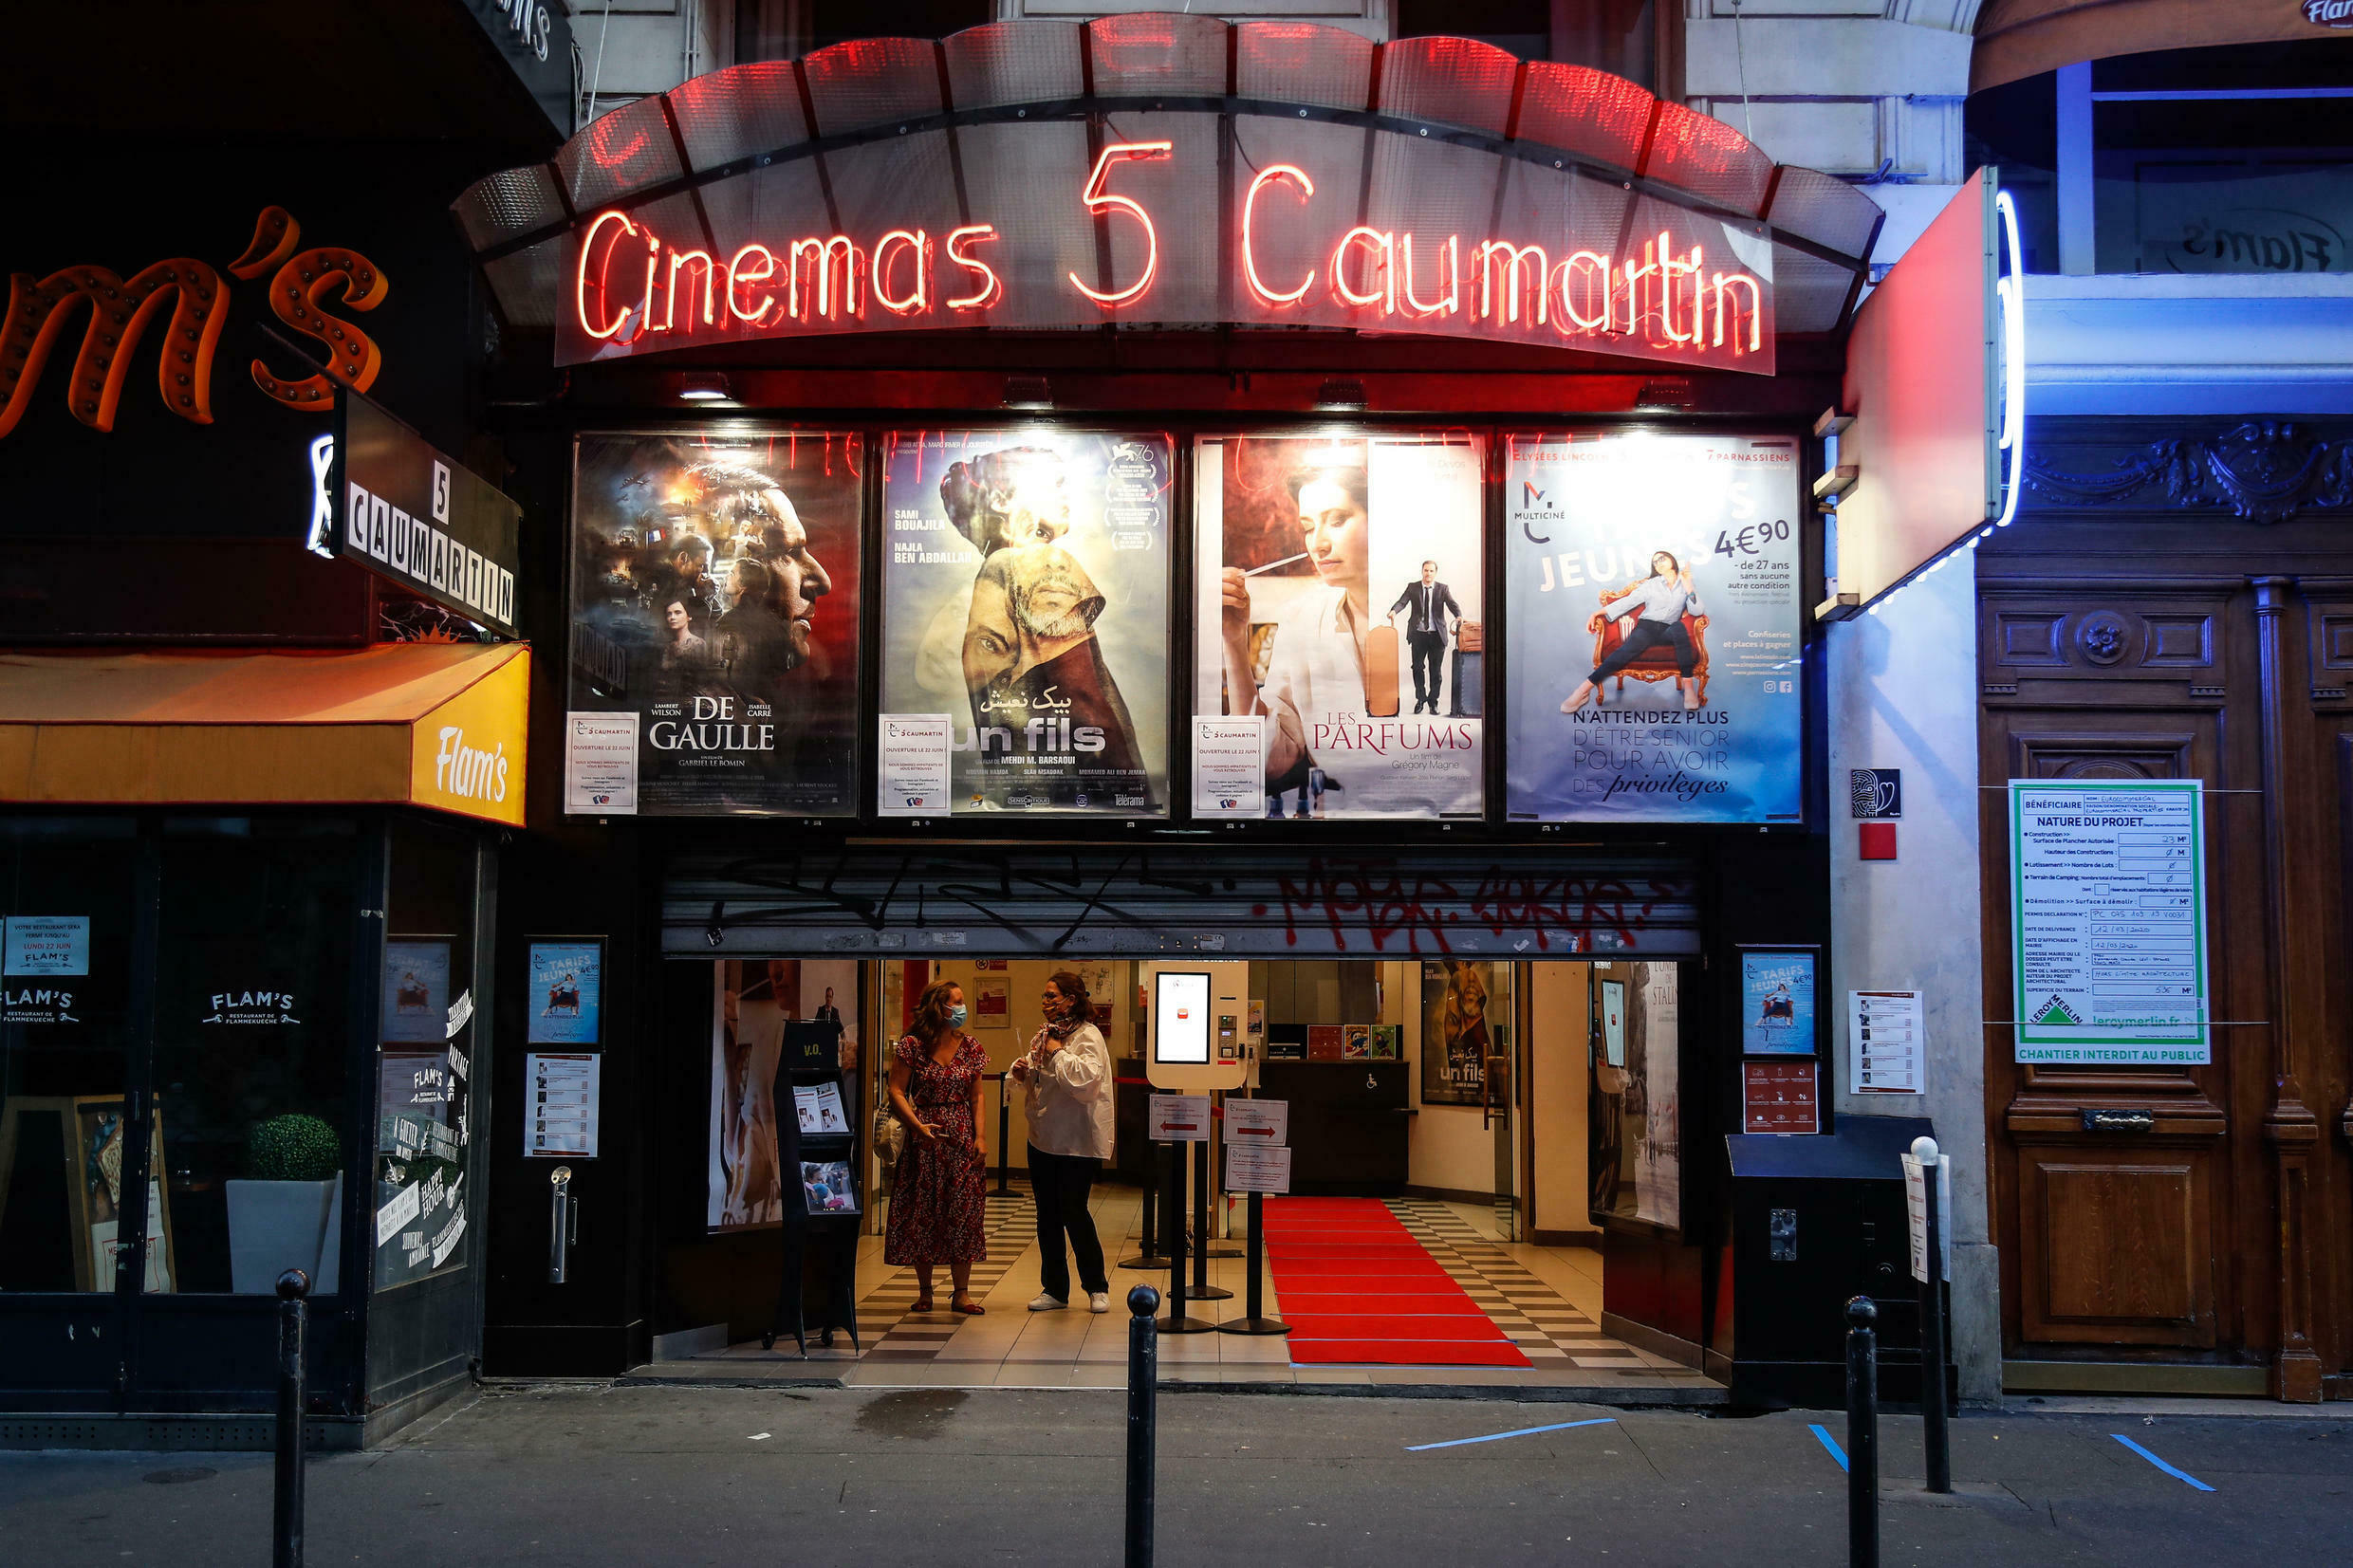 The Cinema 5 Caumartin cinema in Paris reopens at one minute past midnight on June 22, 2020.